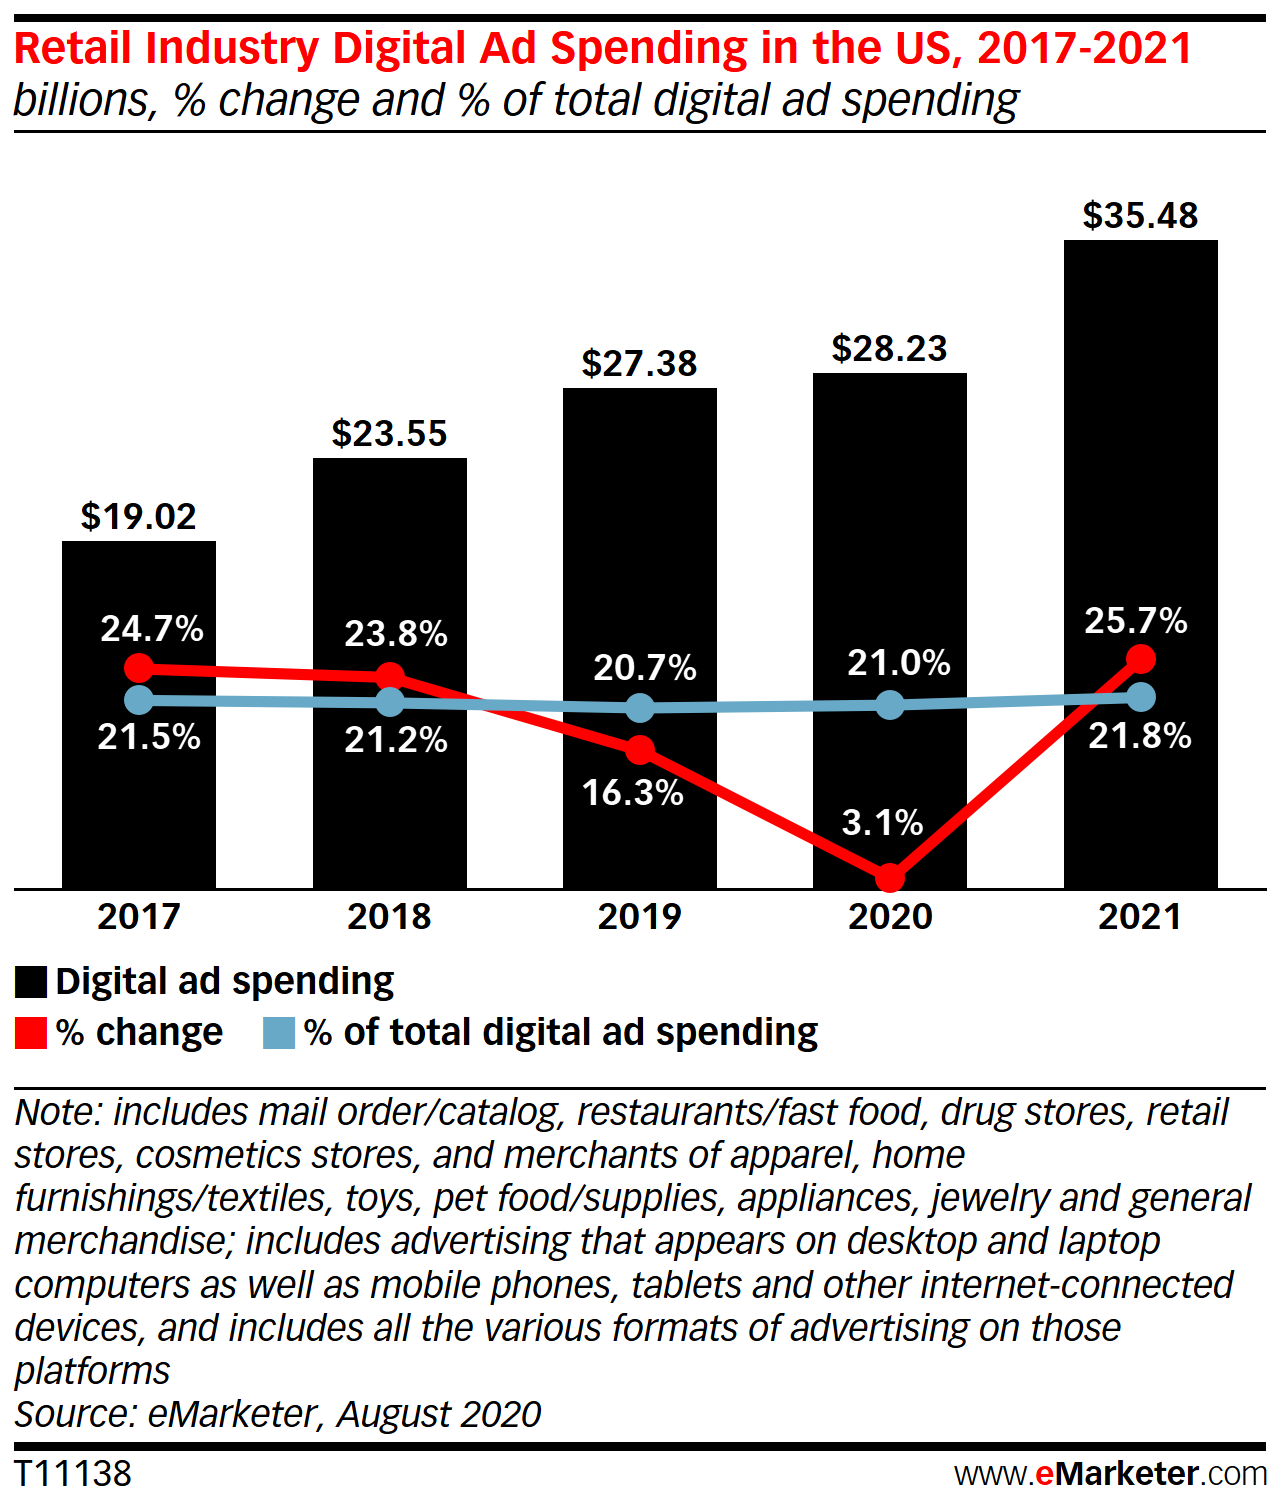 Retail Industry Digital Ad Spending in the US, 2017-2021 (billions, % change and % of total digital ad spending)